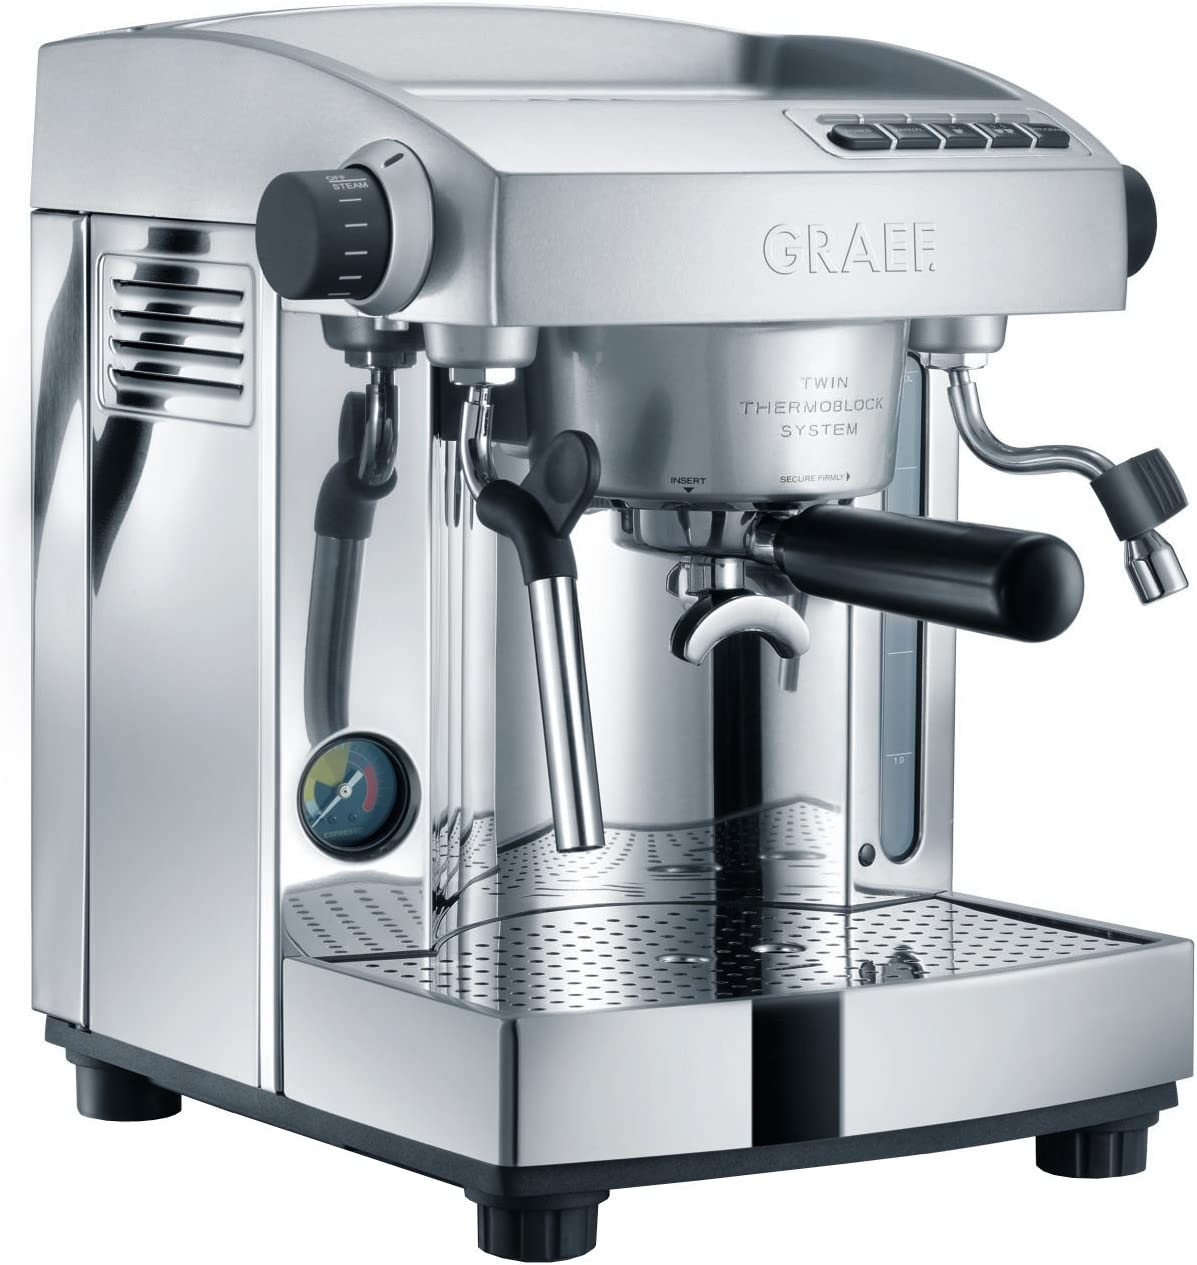 Graef ES 95 Independiente Manual Máquina espresso 3L 2tazas Acero inoxidable - Cafetera (Independiente, Máquina espresso, 3 L, De café molido, 2200 W, Acero inoxidable): Amazon.es: Hogar